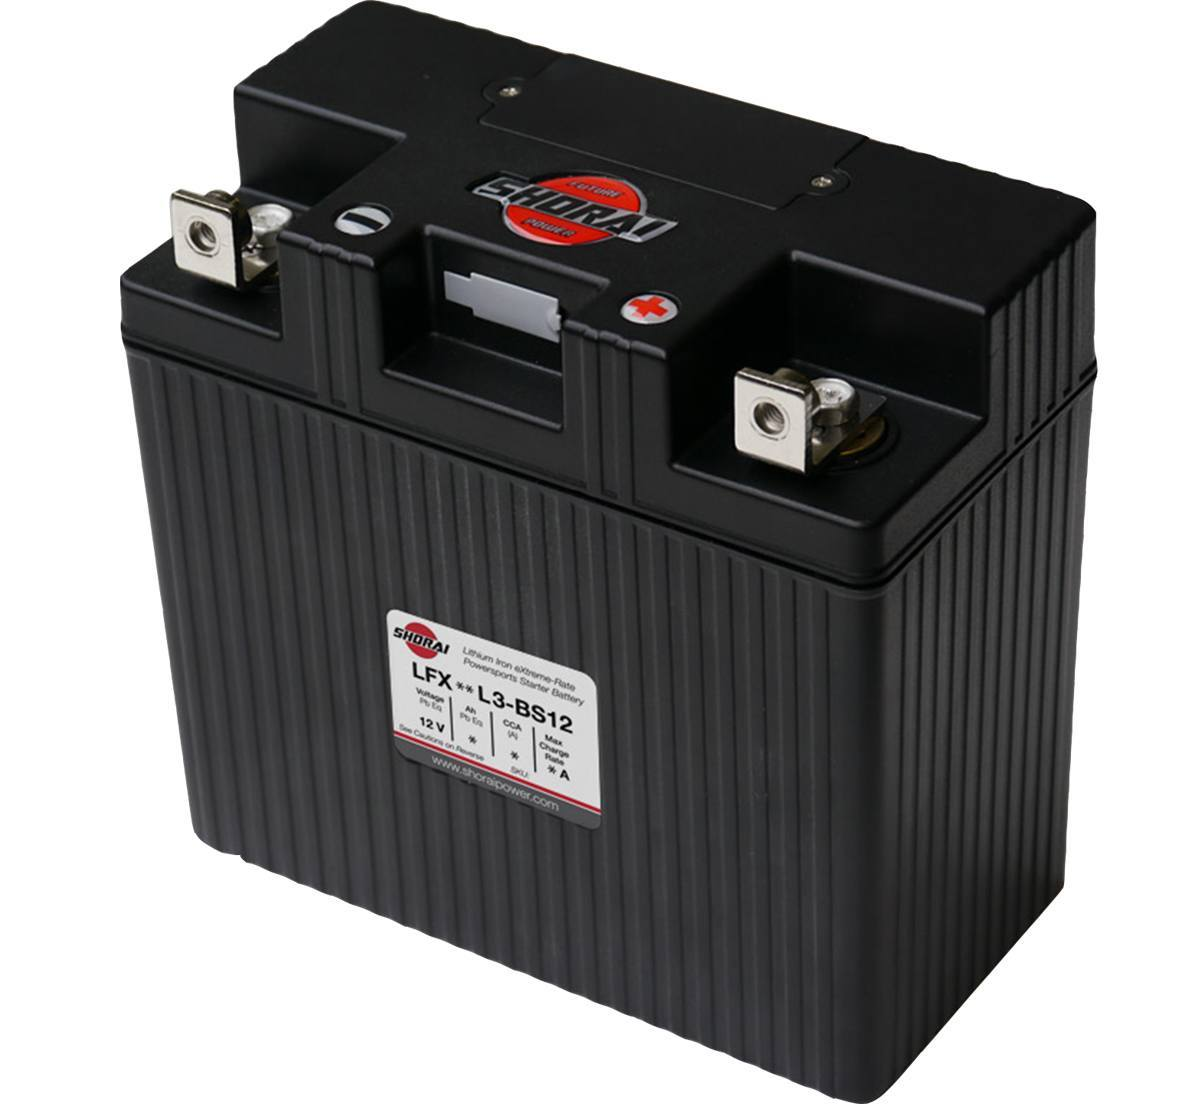 Shorai LFX27L3-BS12 12v 27Ah Lithium Battery